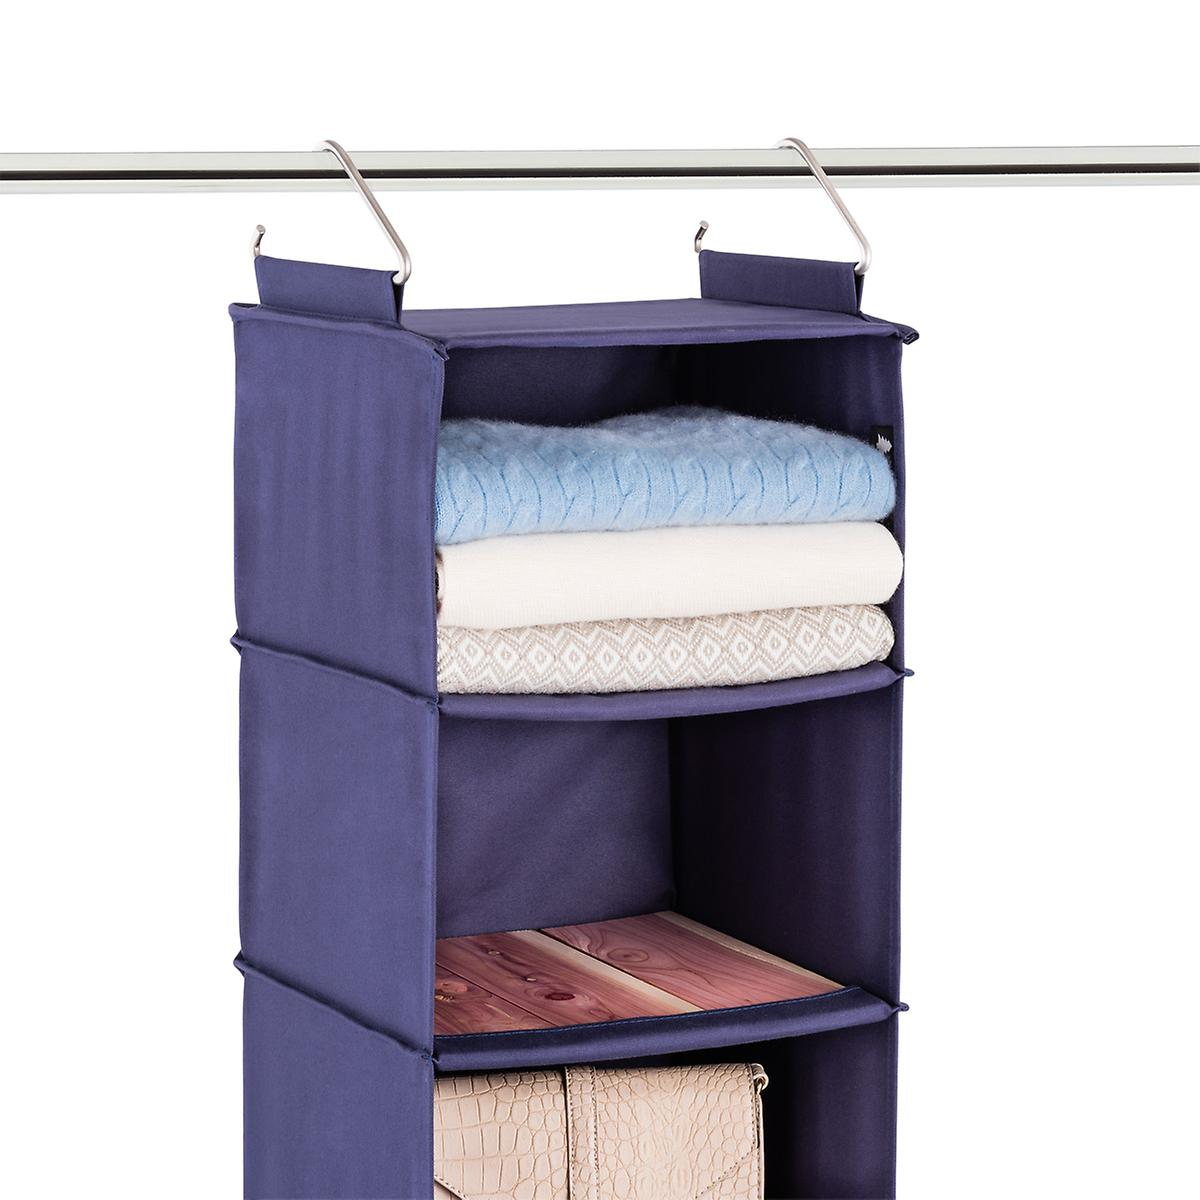 Cedar Stow 6 Compartment Hanging Sweater Organizer The